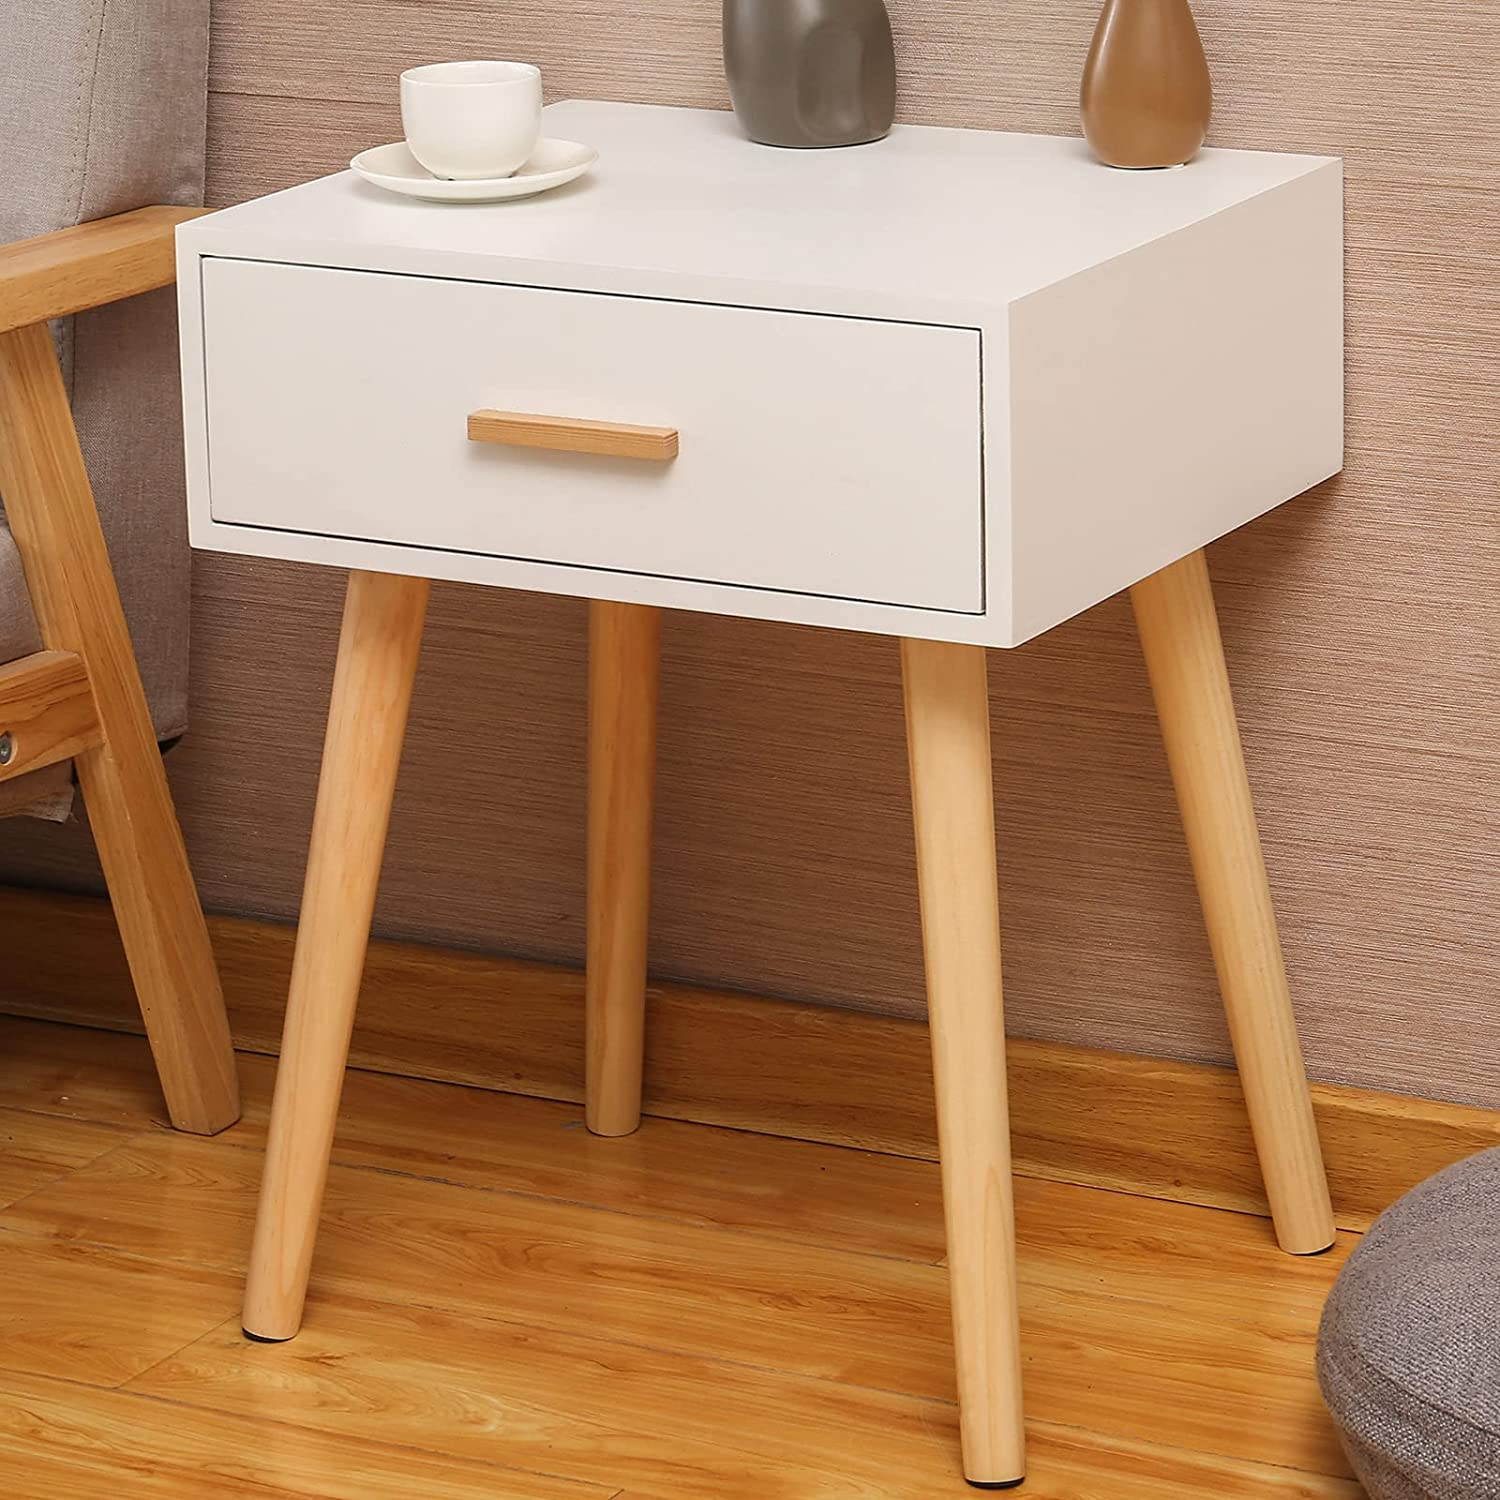 Nightstand with Drawer,Mid-Century Wood Bedside Table for Bedroom, Small Side End Table with Storage,White.